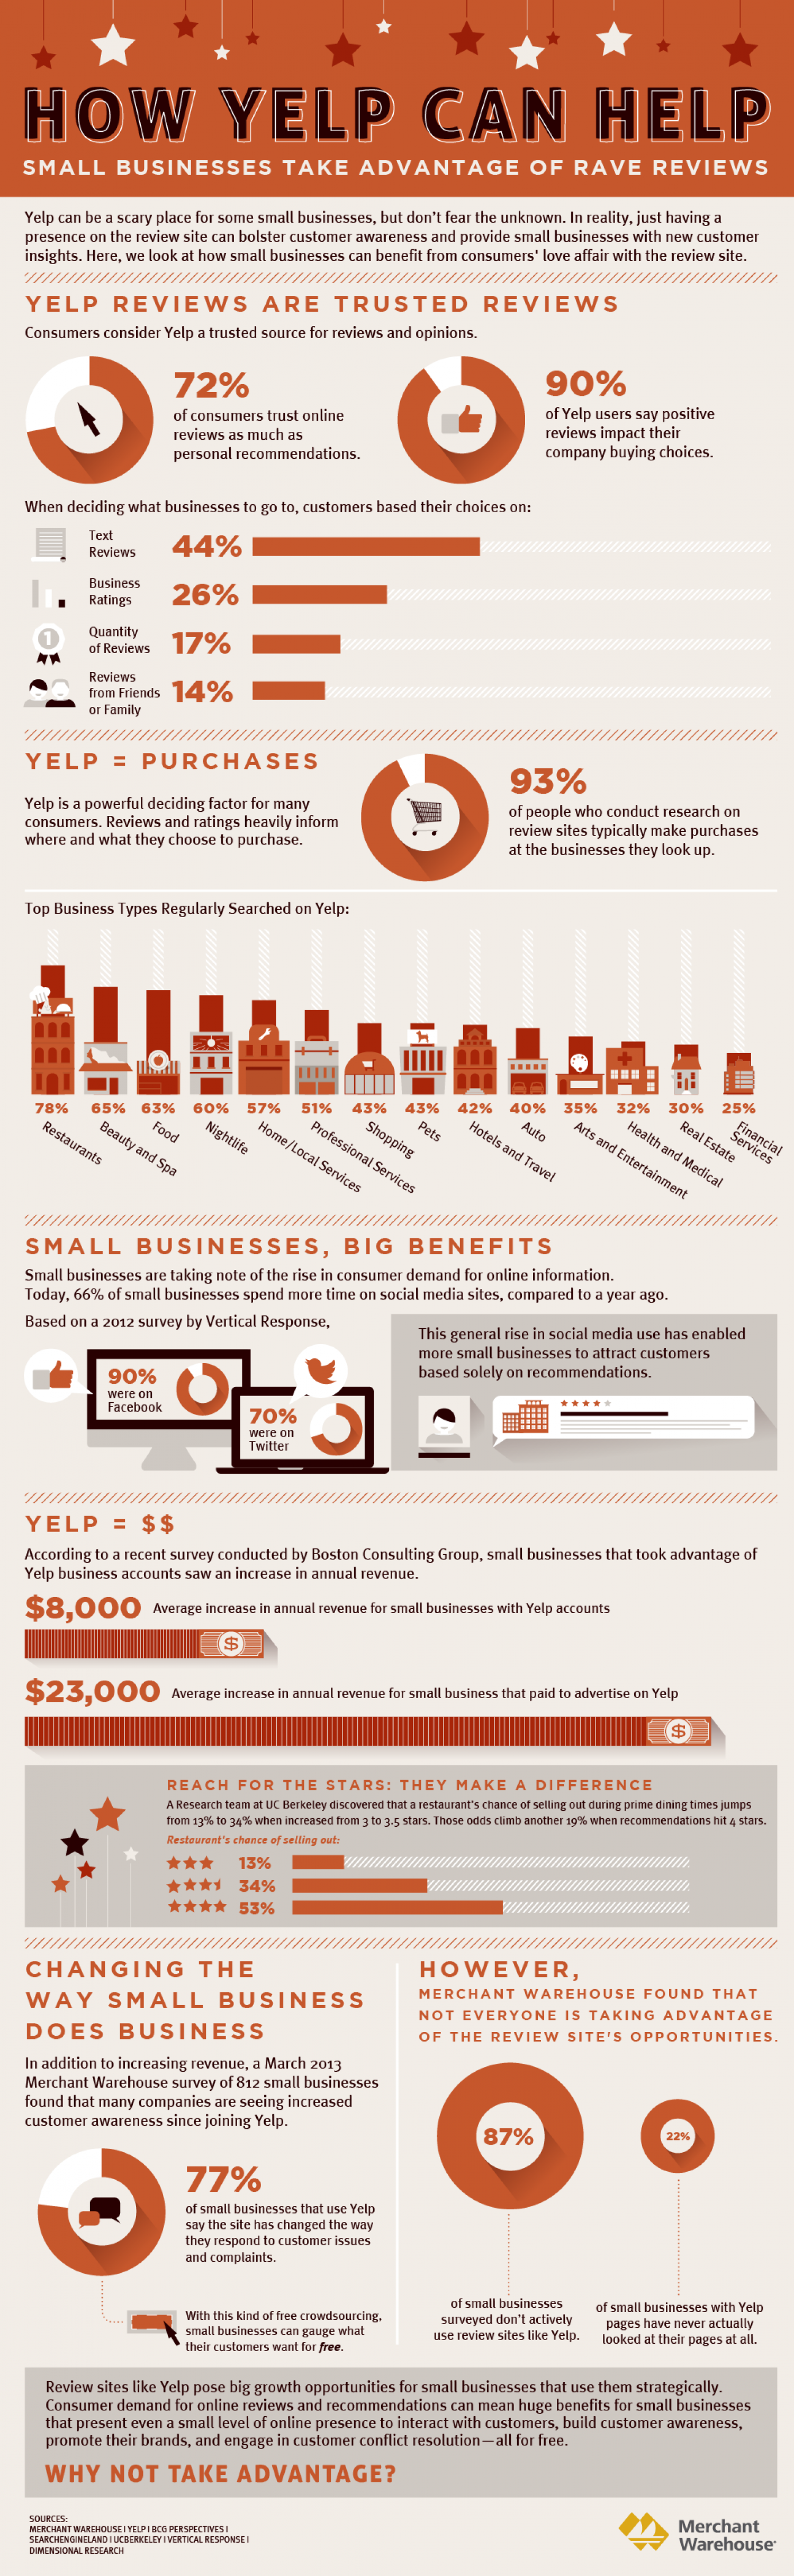 How Yelp Can Help! Infographic